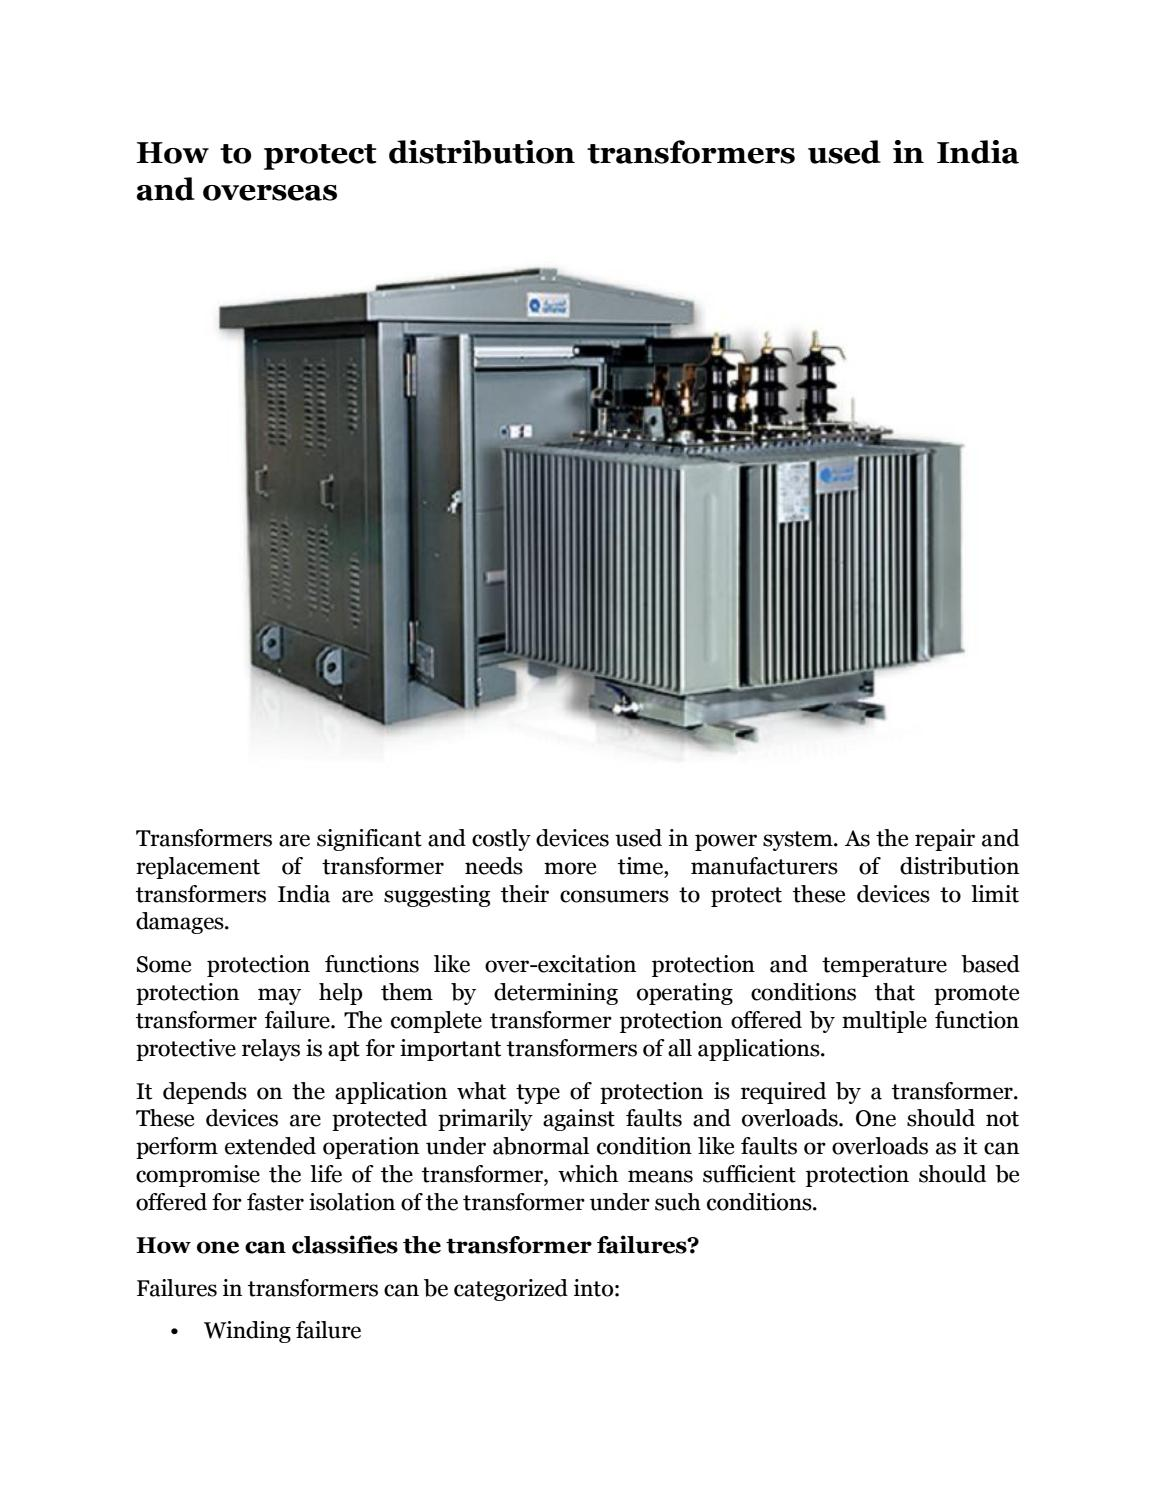 How to protect distribution transformers used in india and